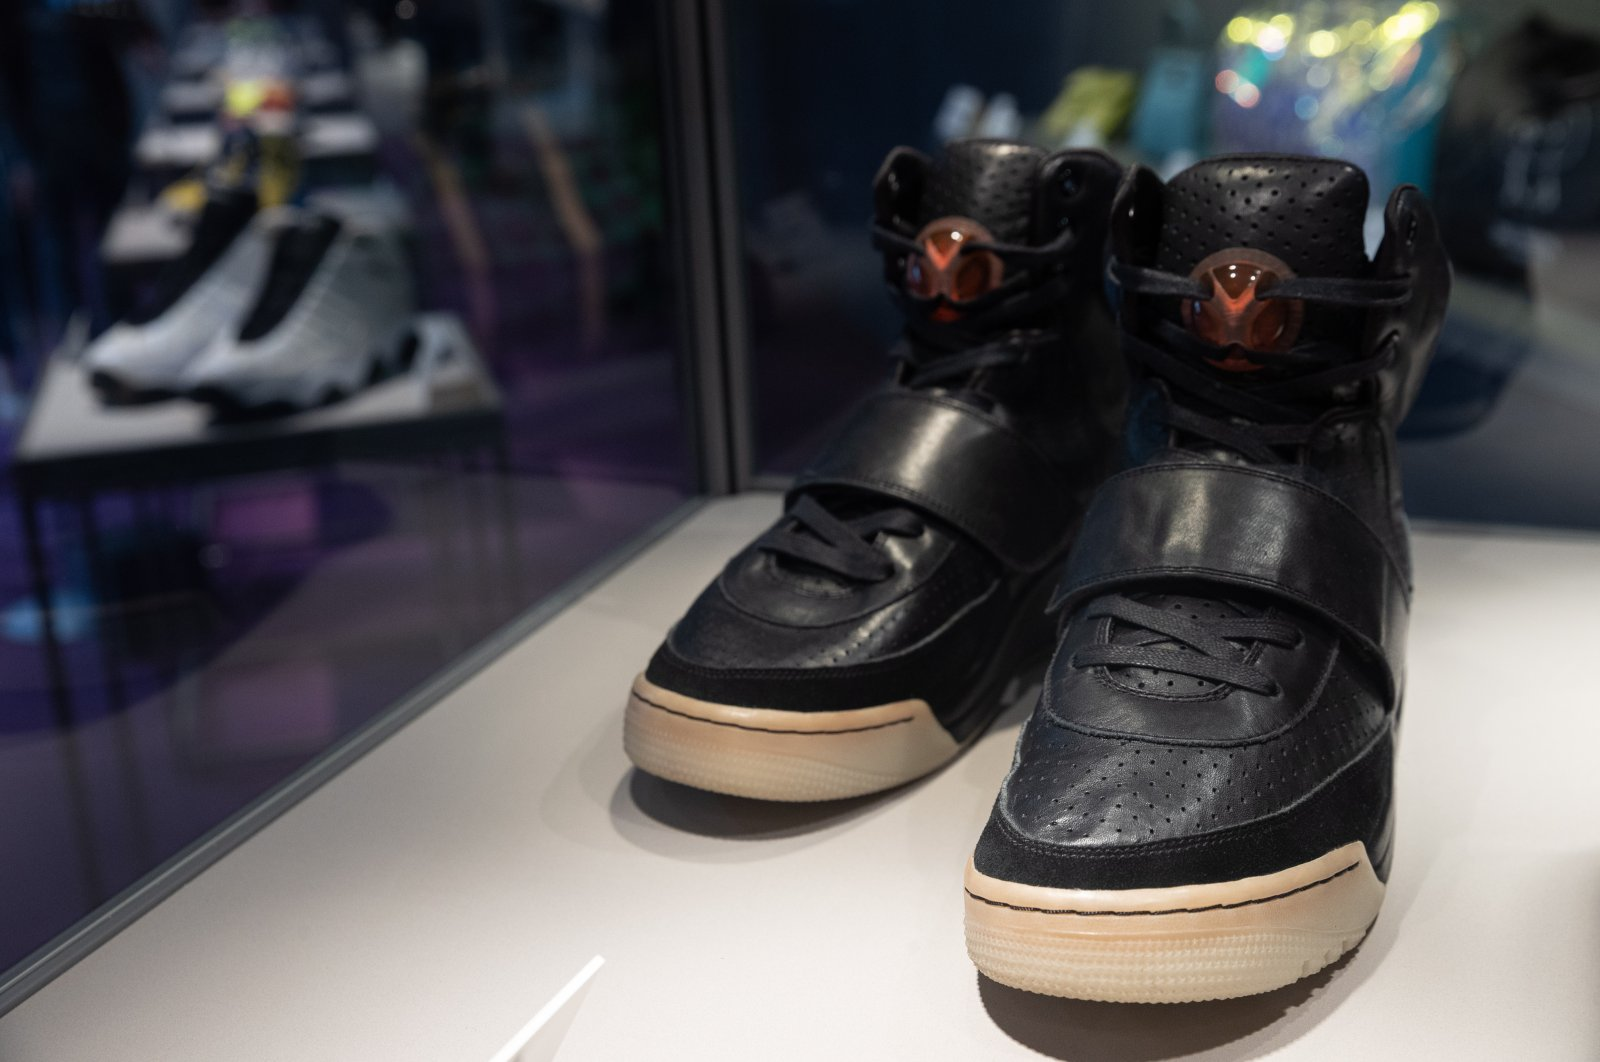 Kanye West 'Grammy Worn' Nike Air Yeezy 1 Prototype sneakers (R) are on display during a Sotheby's auction preview in Hong Kong, China, 17 April 2021. (EPA Photo)